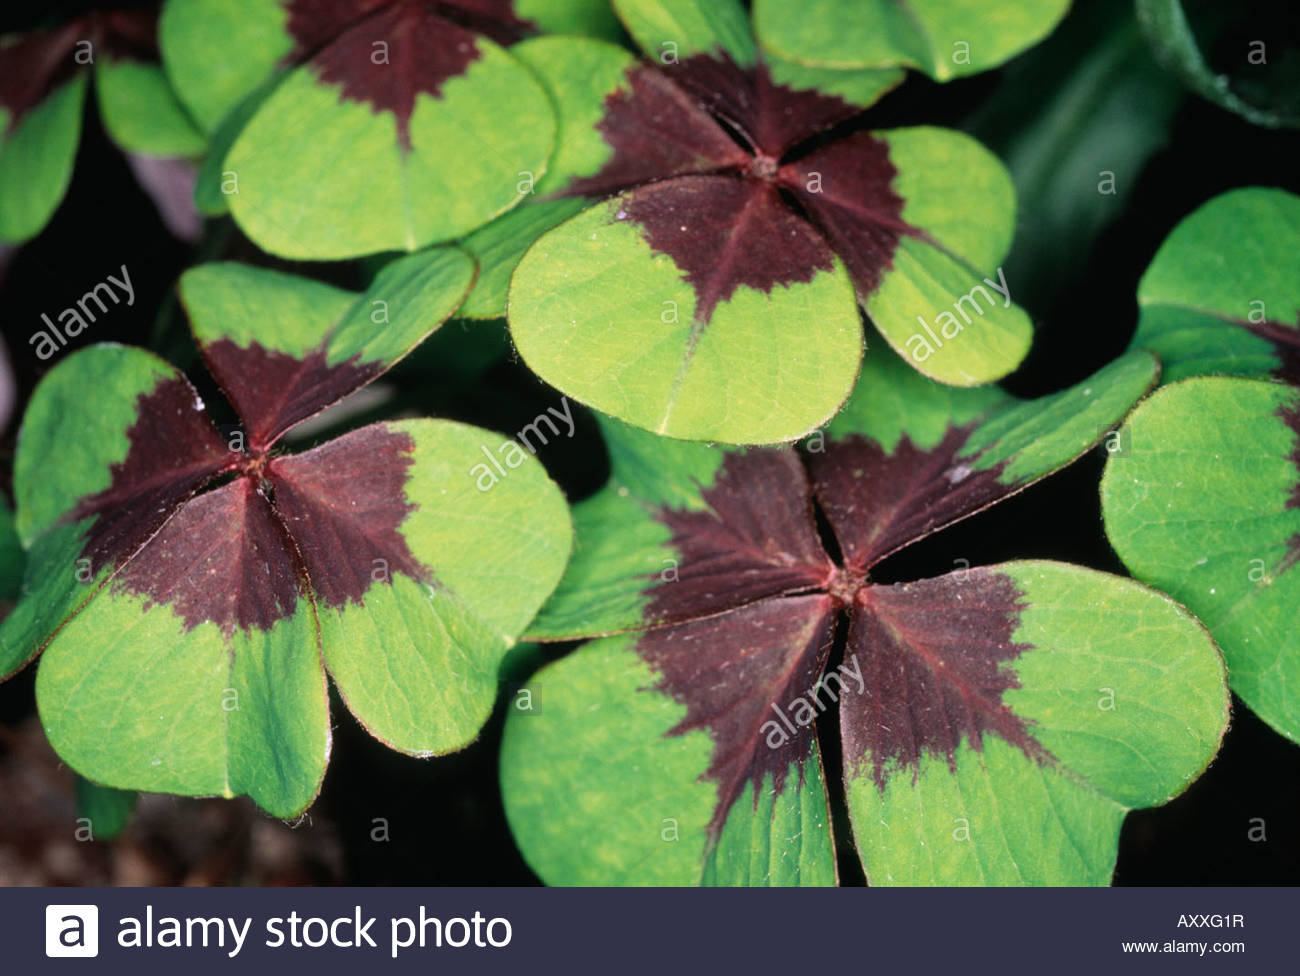 Oxalis Tetraphylla Stock Photos & Oxalis Tetraphylla Stock Images.